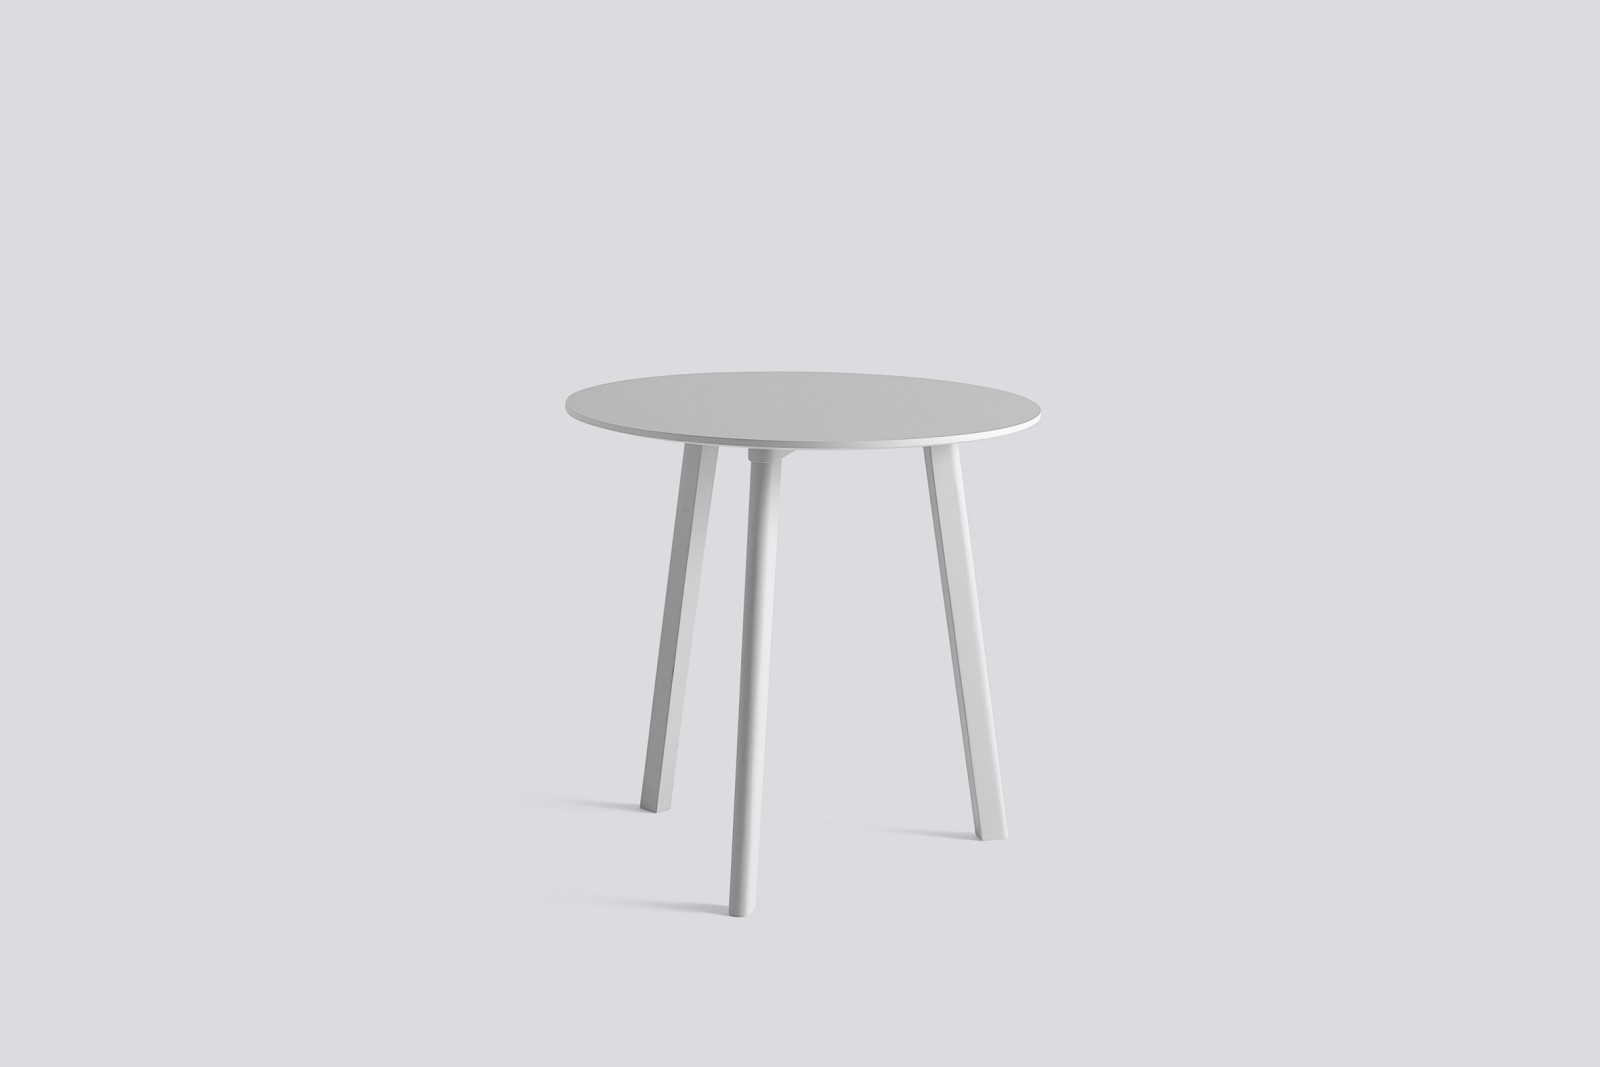 Copenhague Deux (CPH 220) Round Dining Table Dusty Grey Laminate Top, Dusty Grey Beech Base, 75 cm